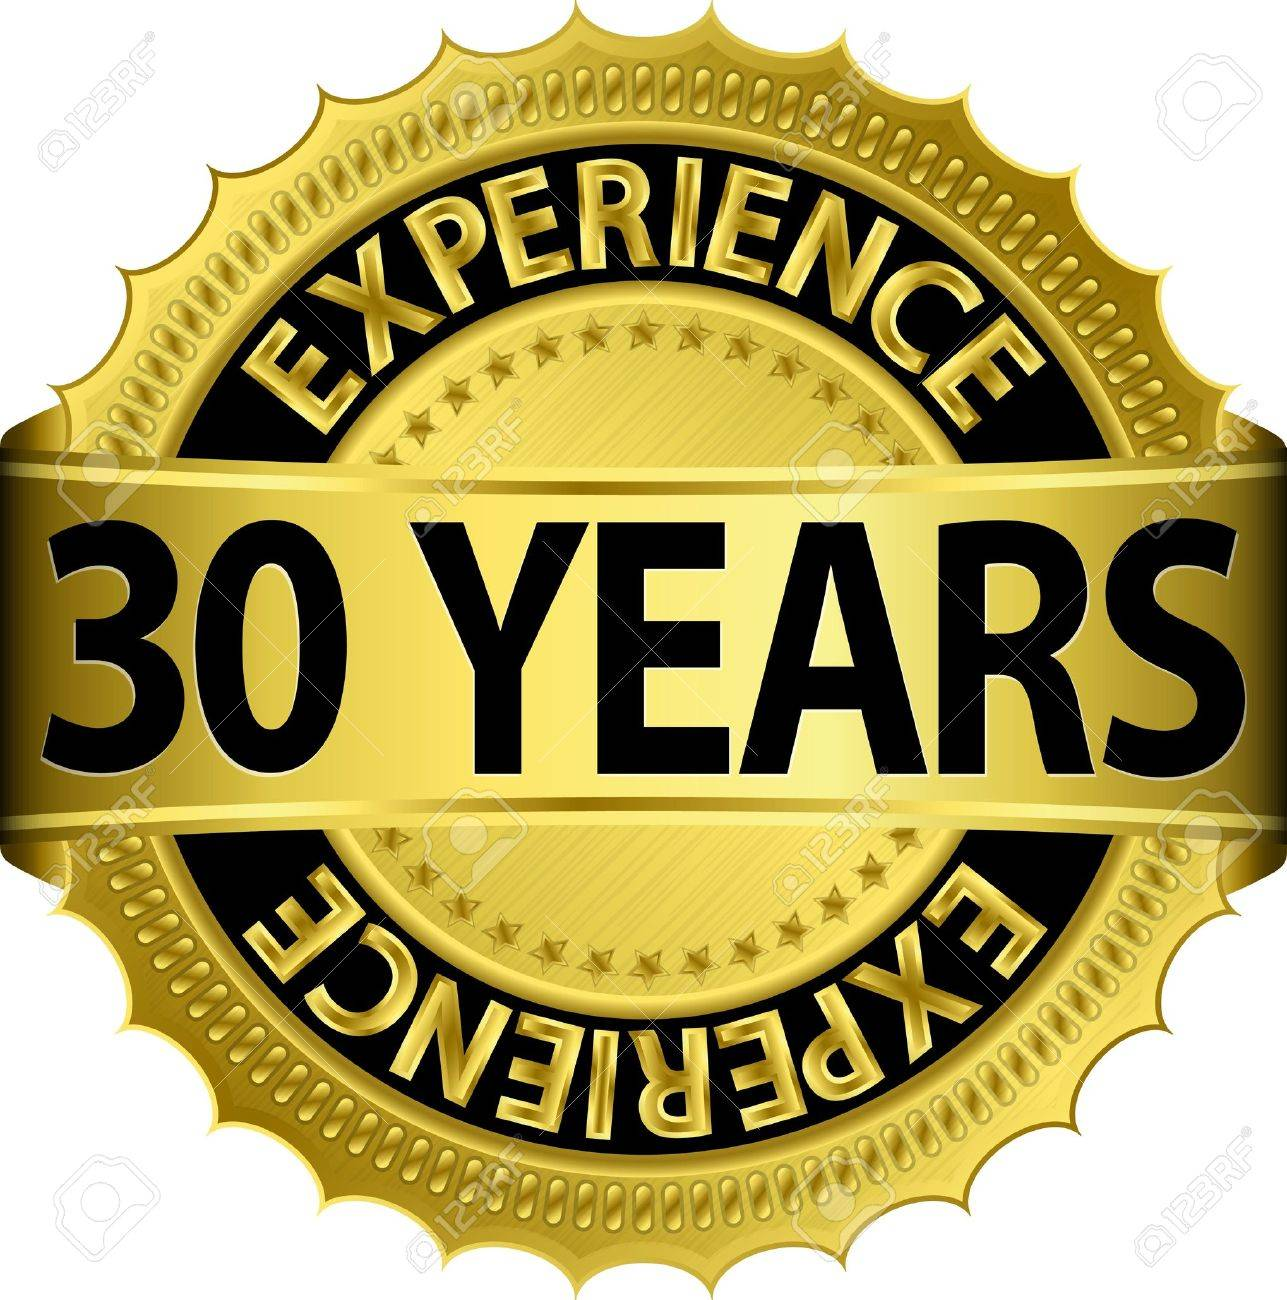 30 years experience golden label with ribbon, vector illustration Stock Vector - 15844560